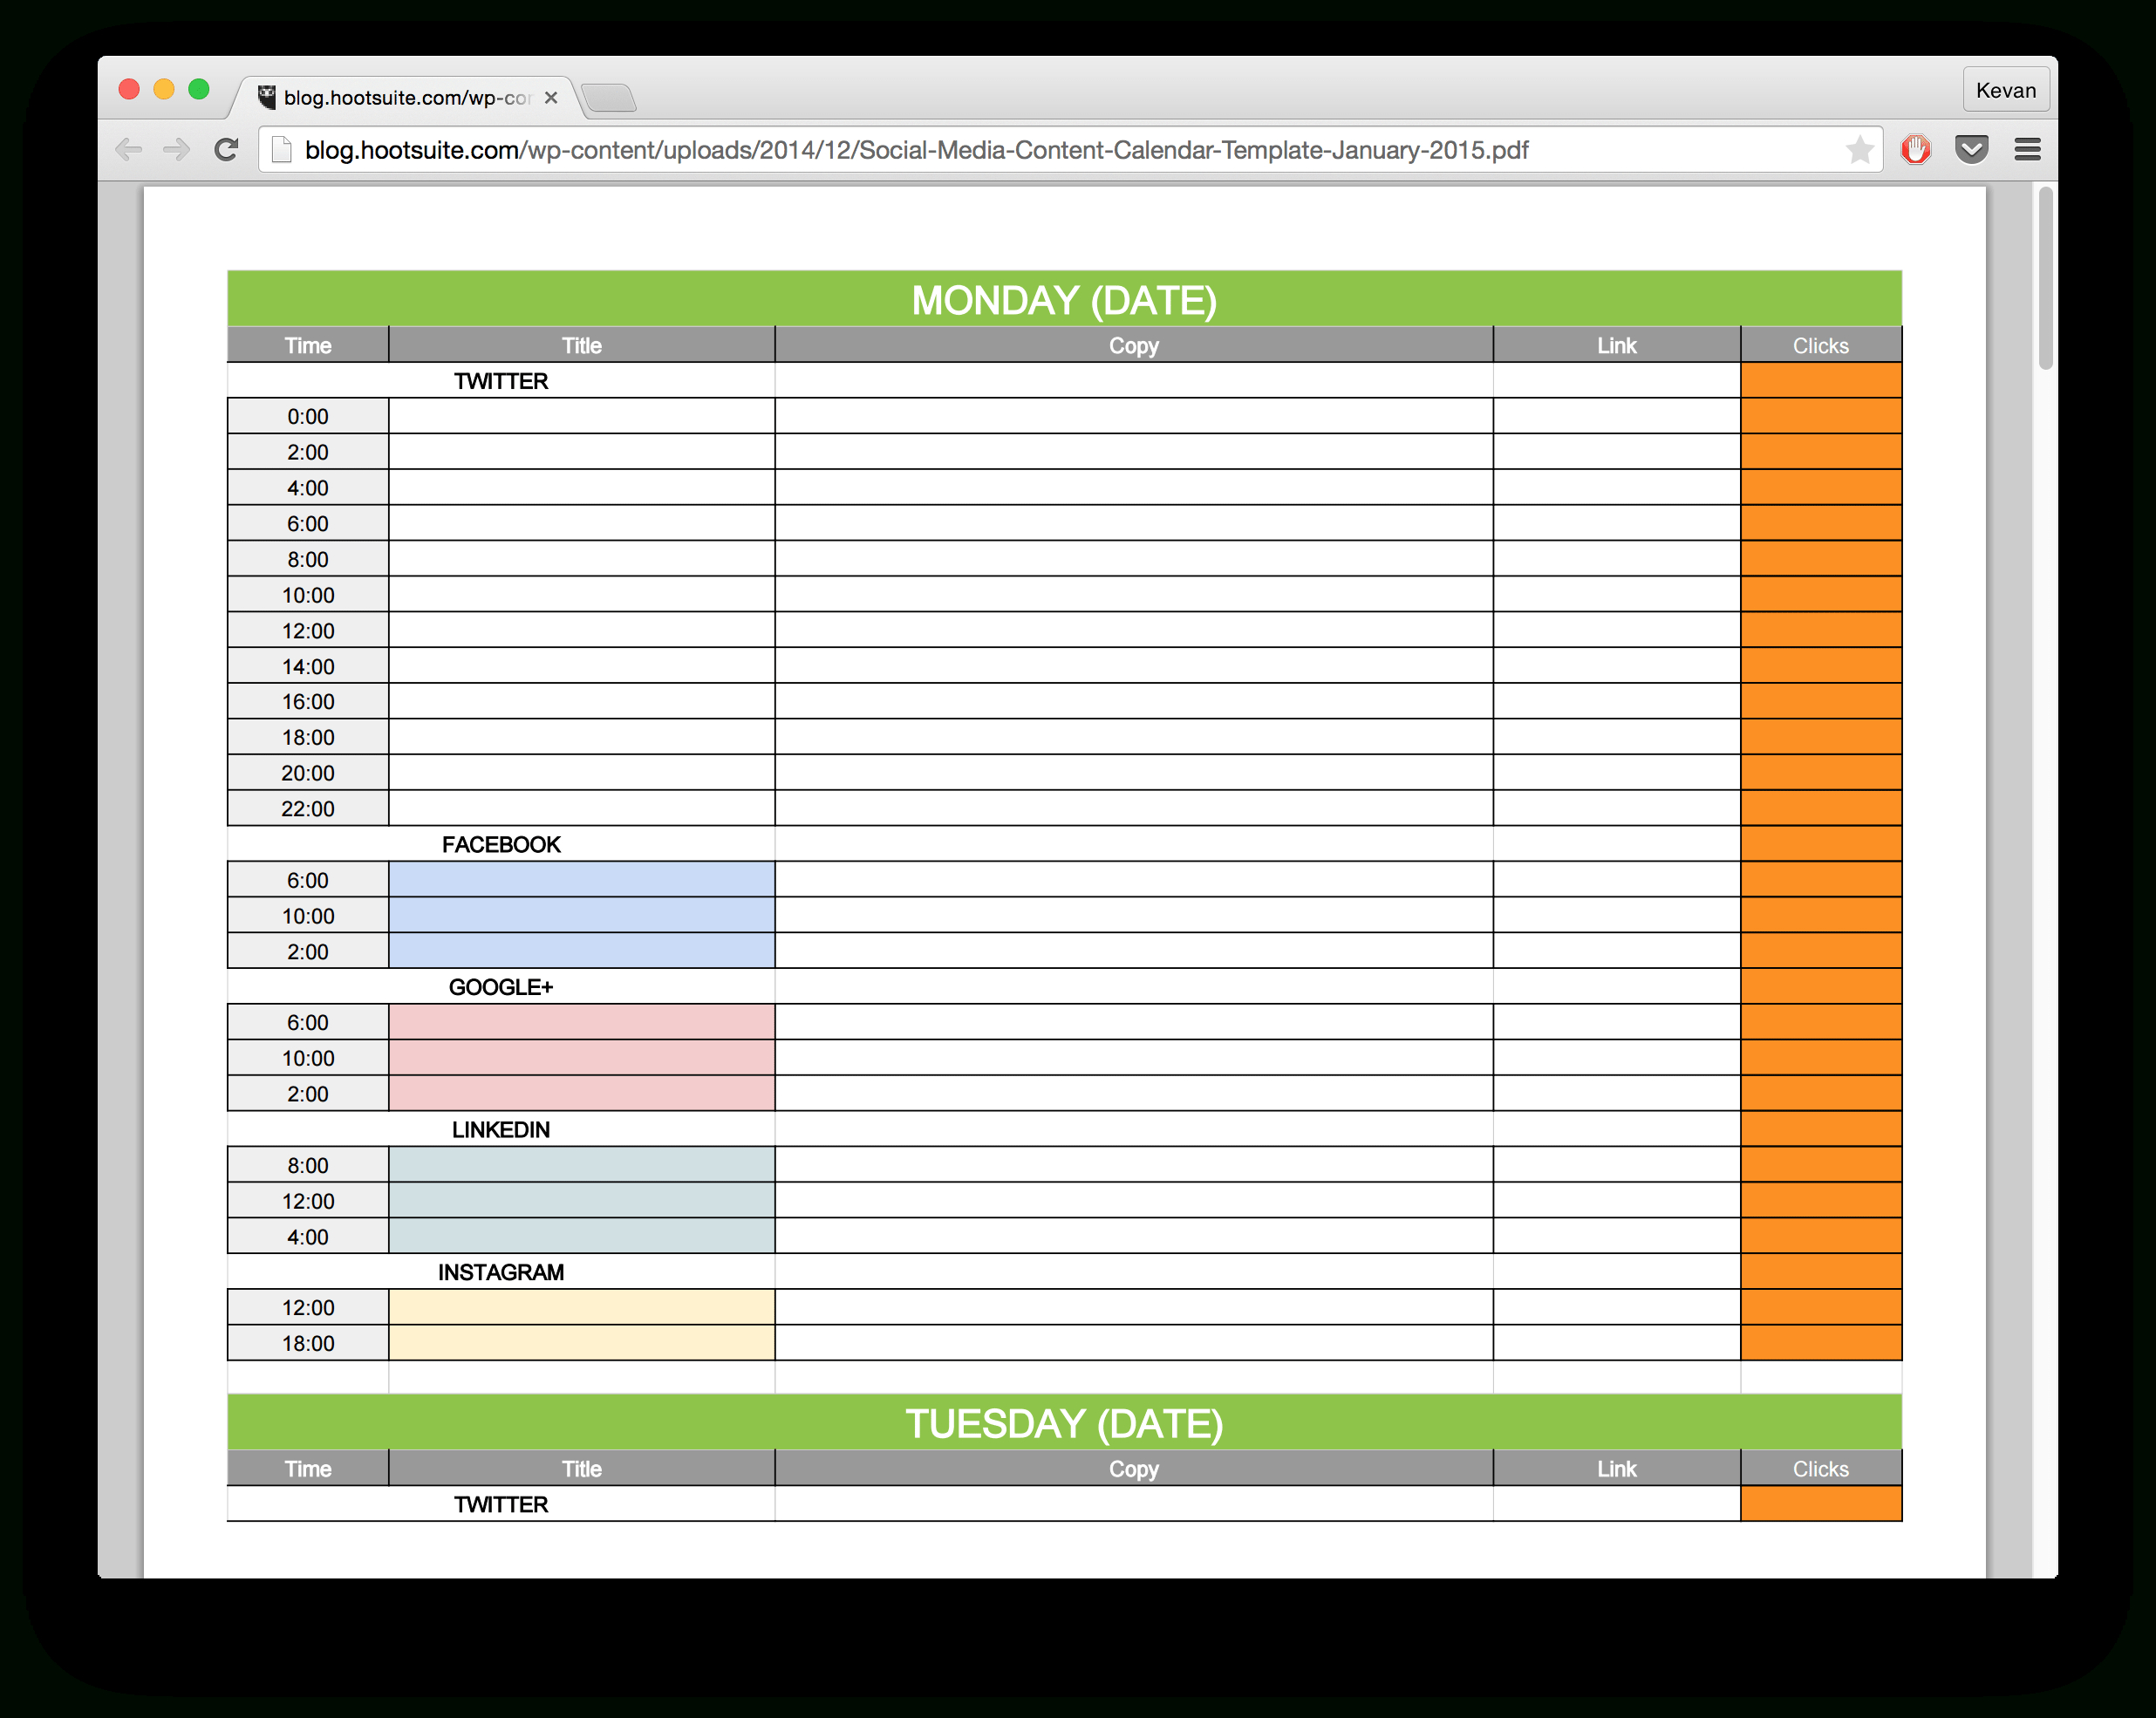 Social Media Planning Spreadsheet Within 15 New Social Media Templates To Save You Even More Time